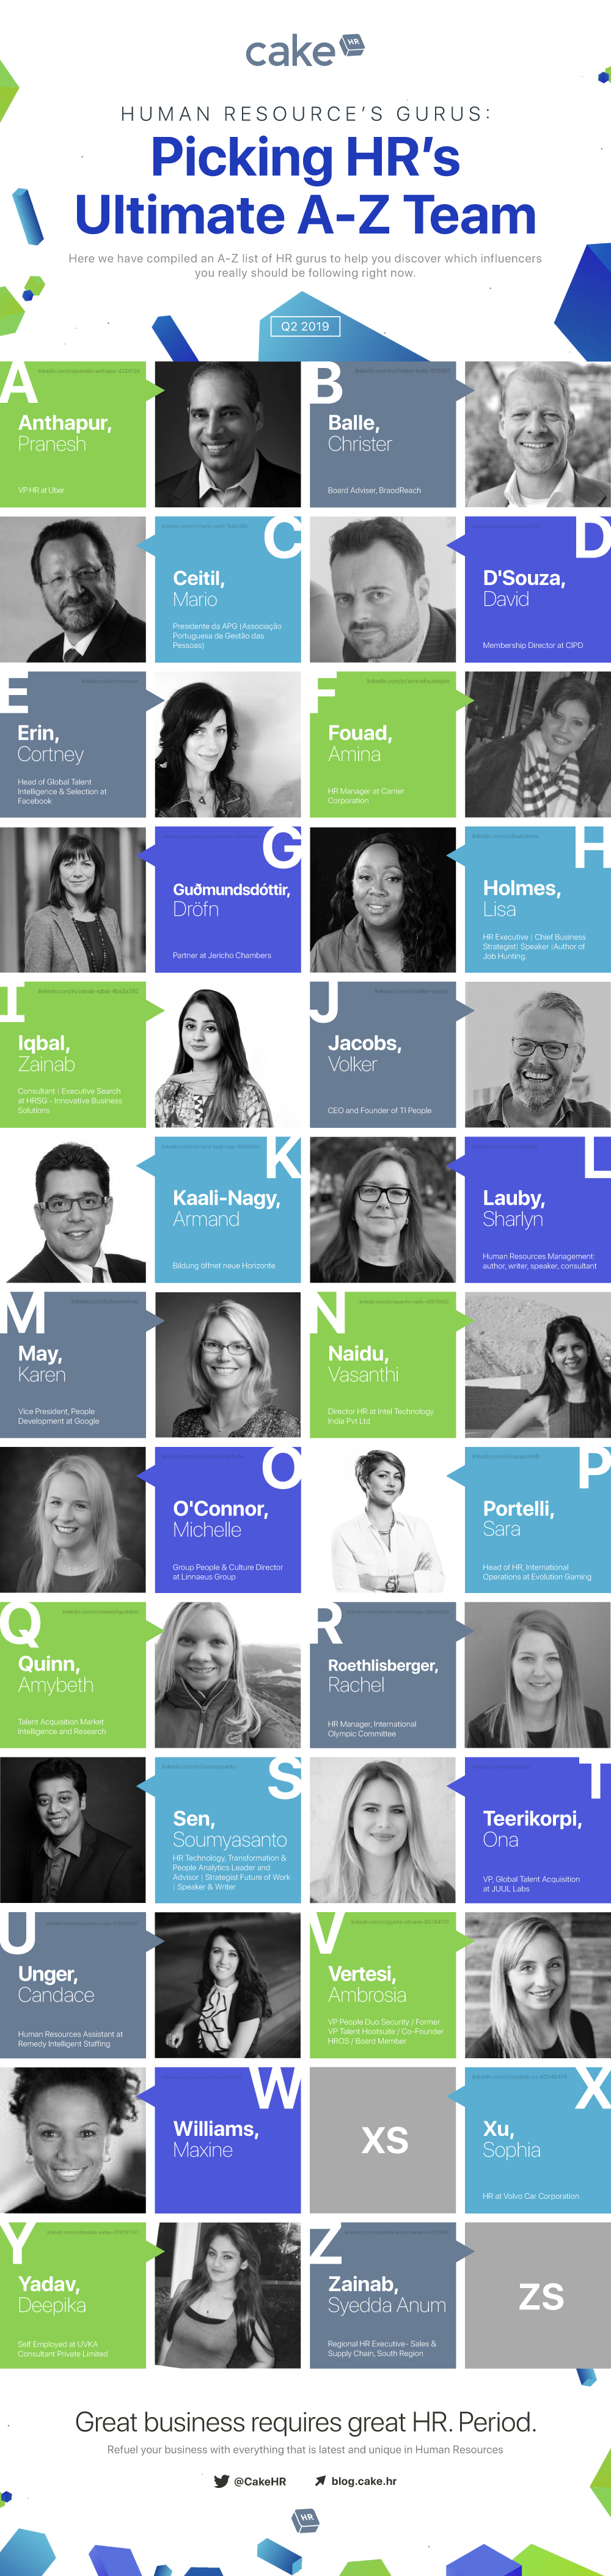 CakeHR's A-Z HR experts list for the second quarter